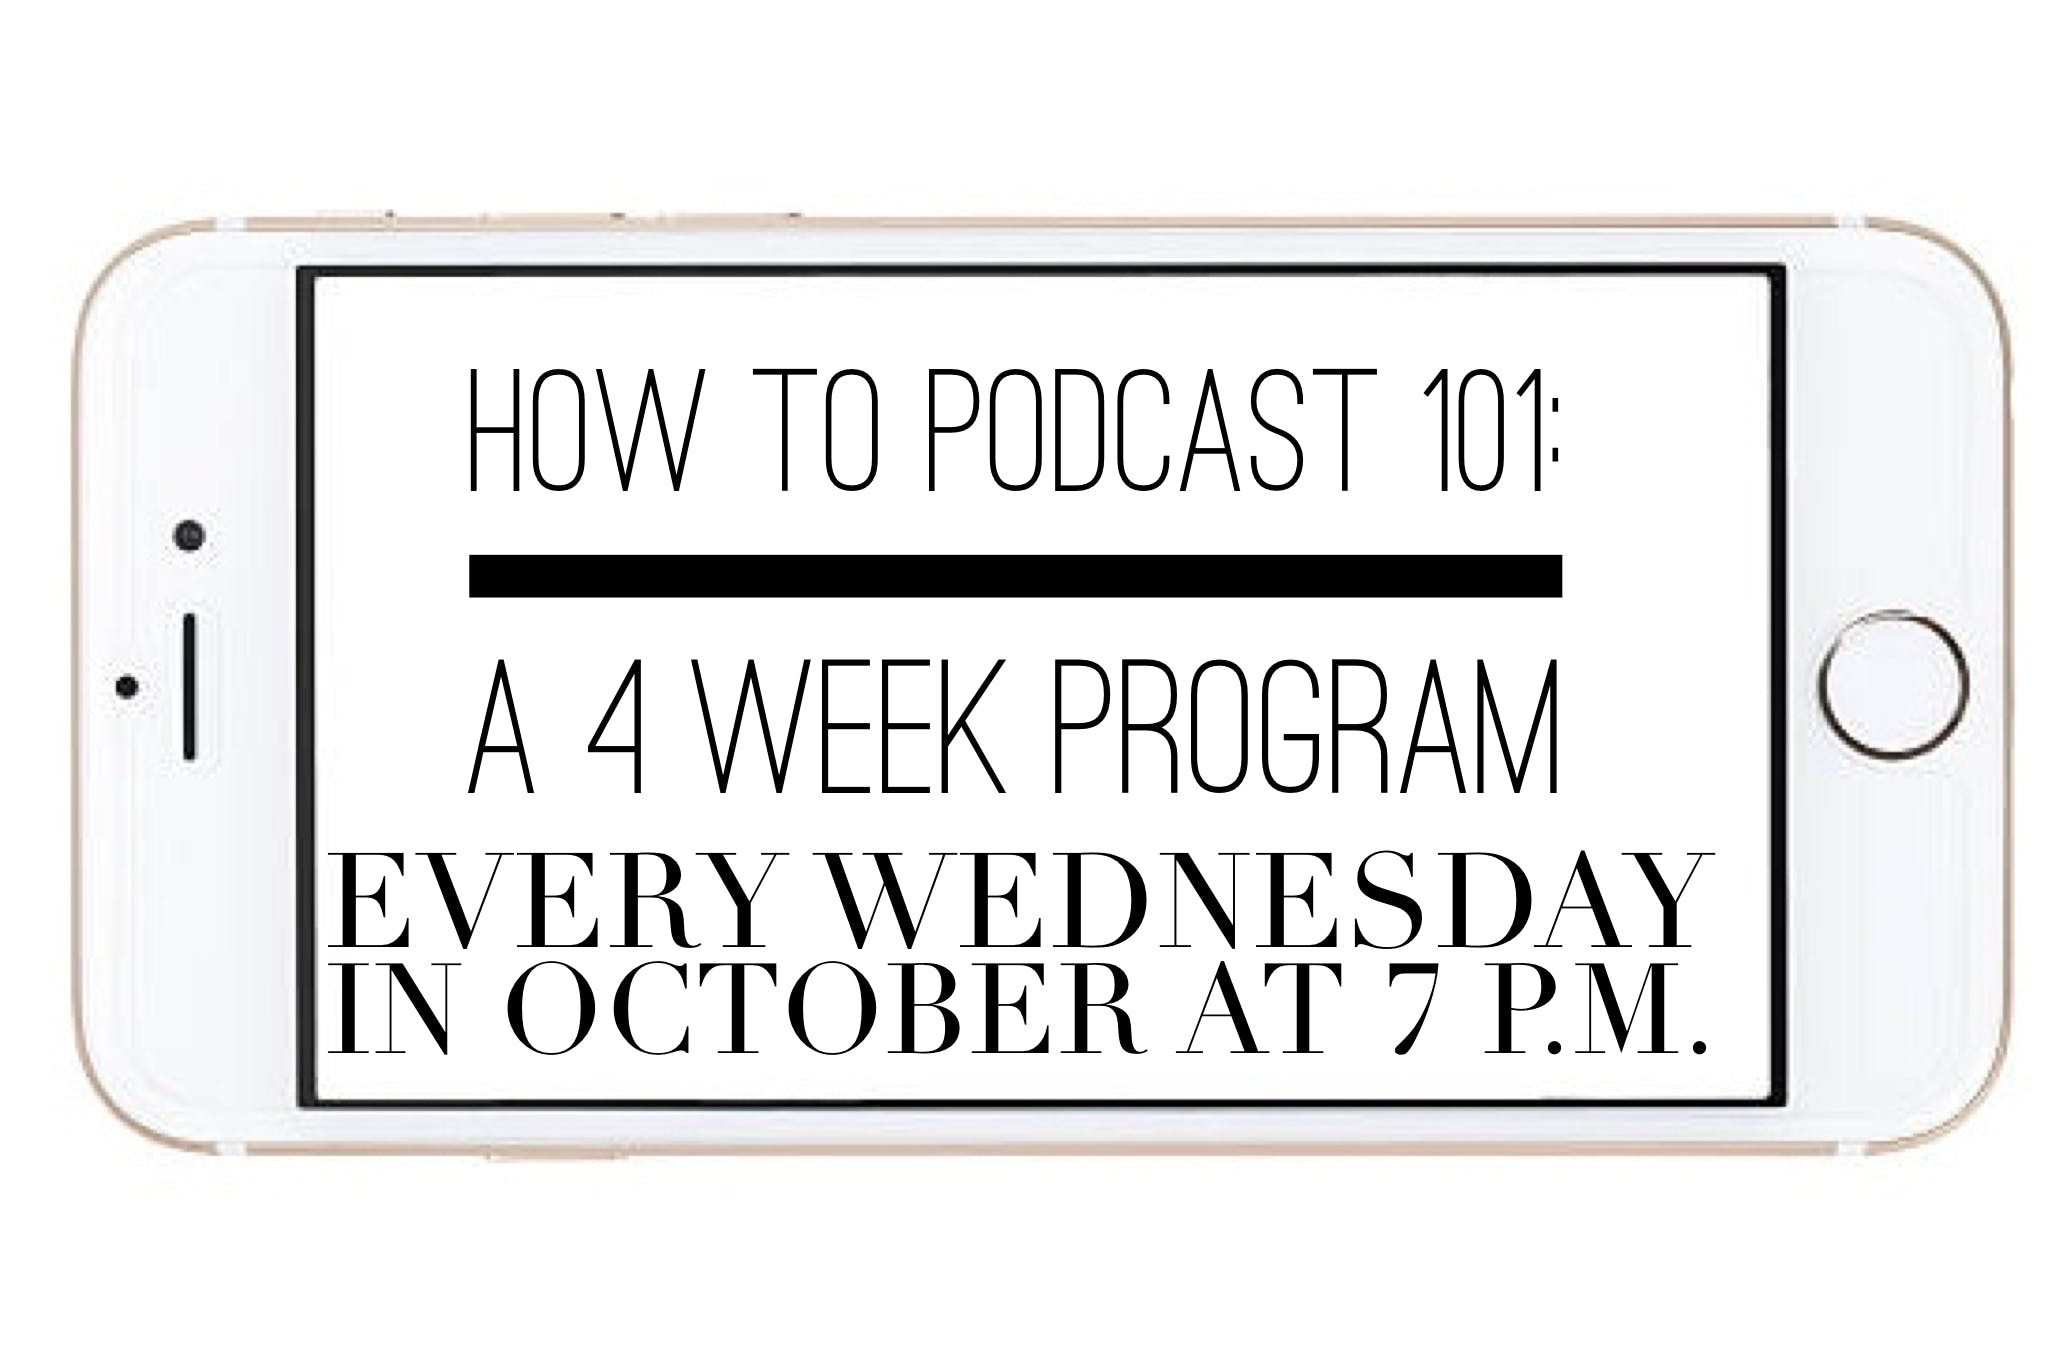 How to Podcast 101: A 4 Week Program